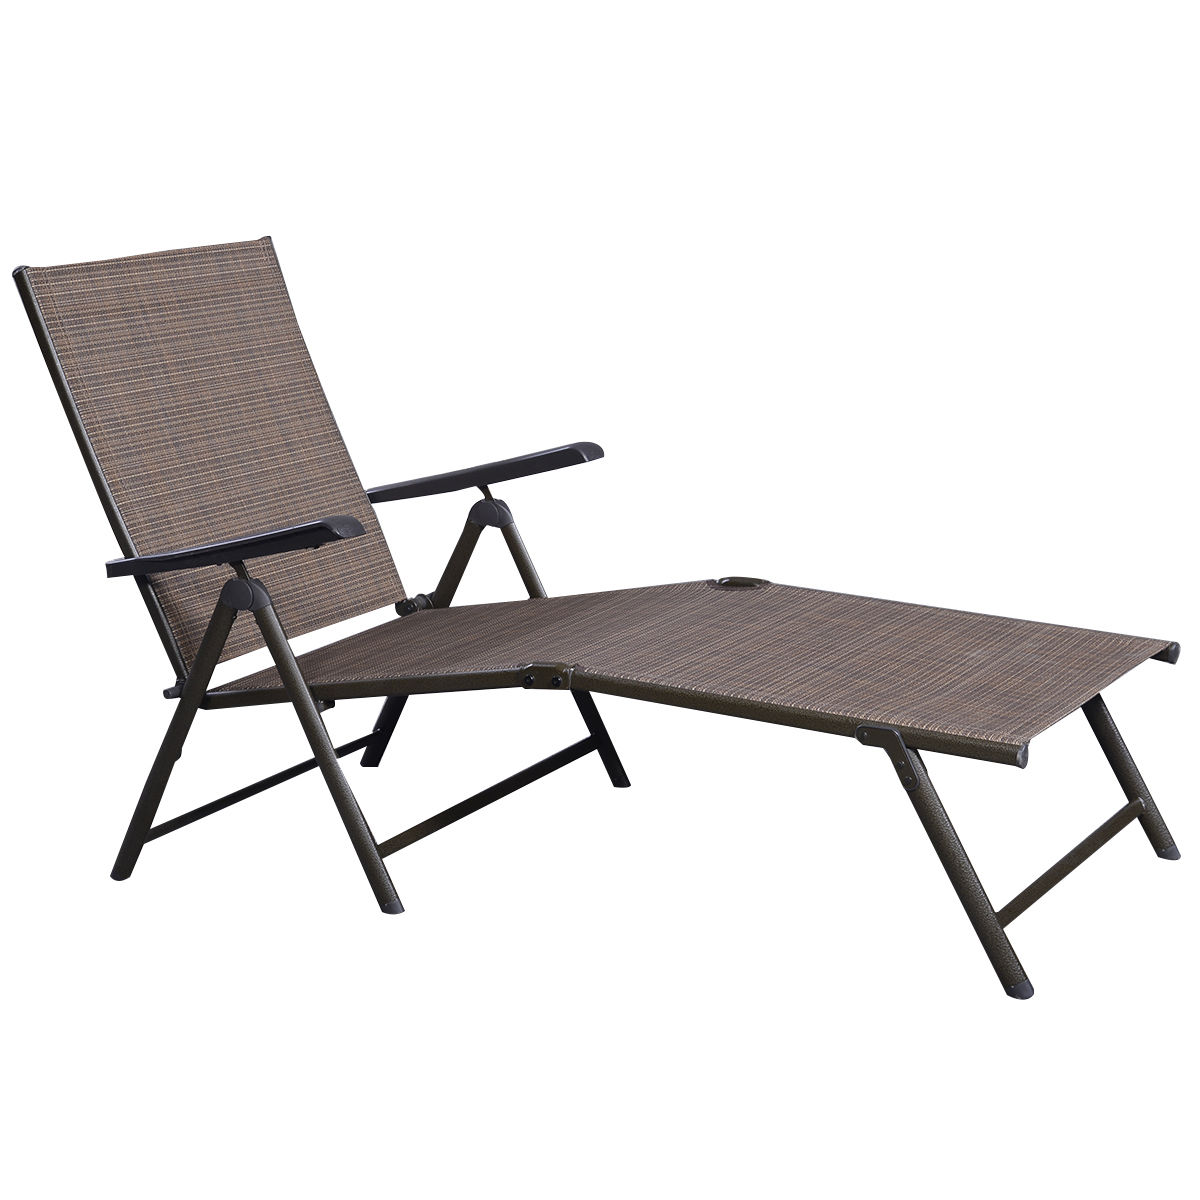 Outdoor Adjustable Chaise Lounge Chair Sunloungers Outdoor